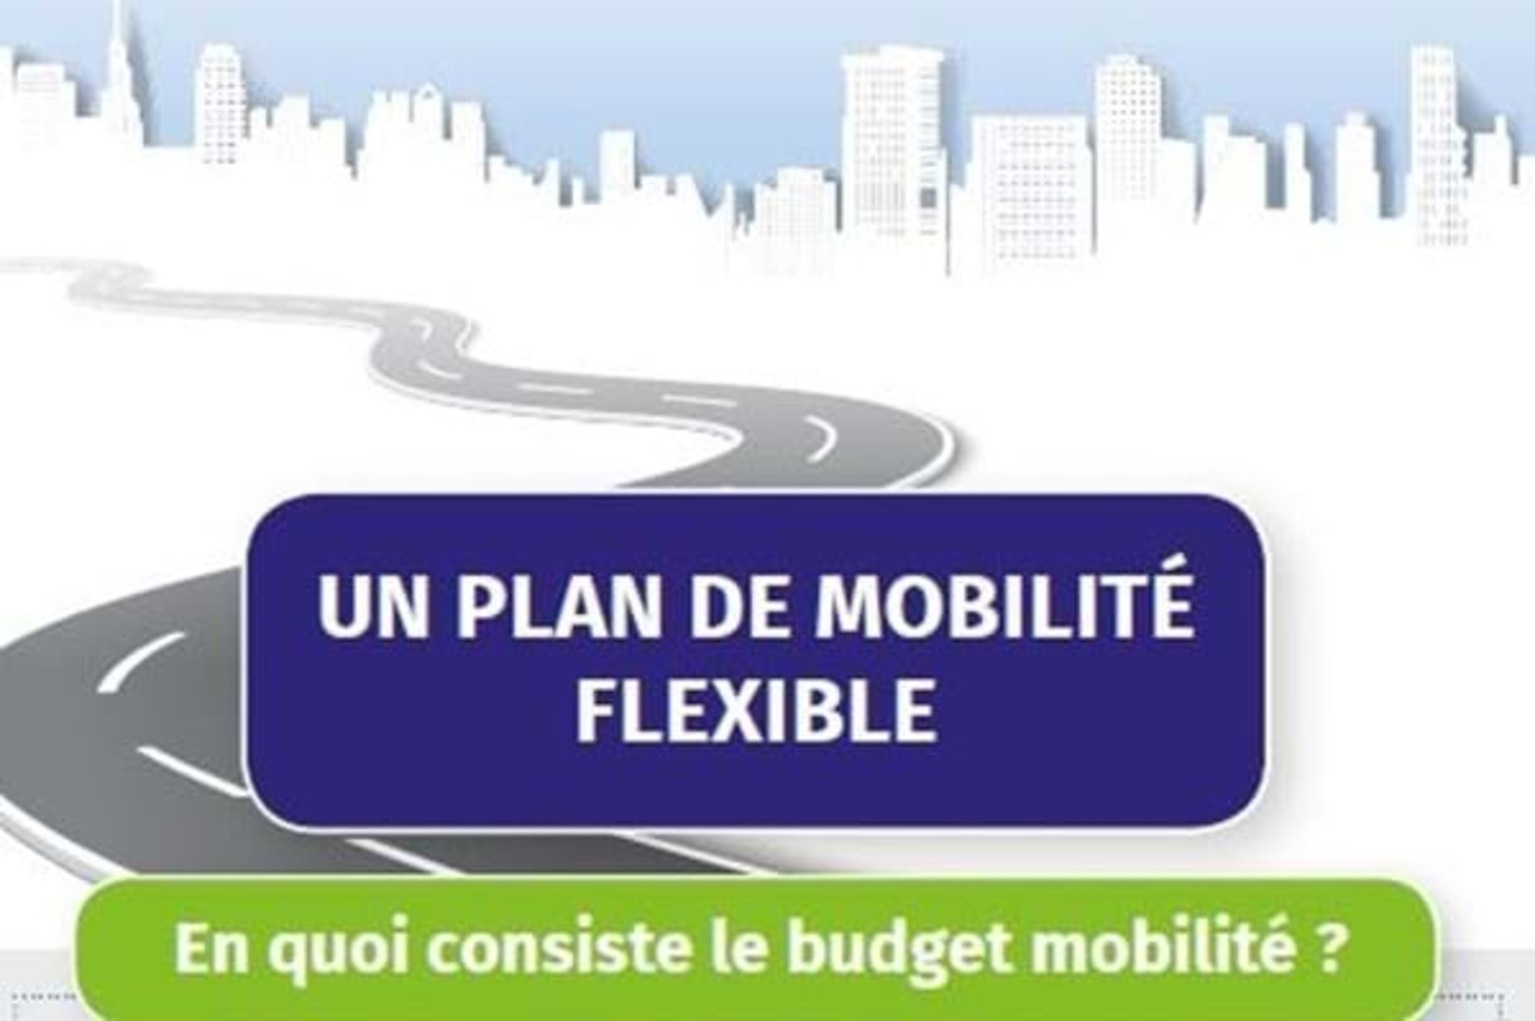 Plan de mobilite flexible